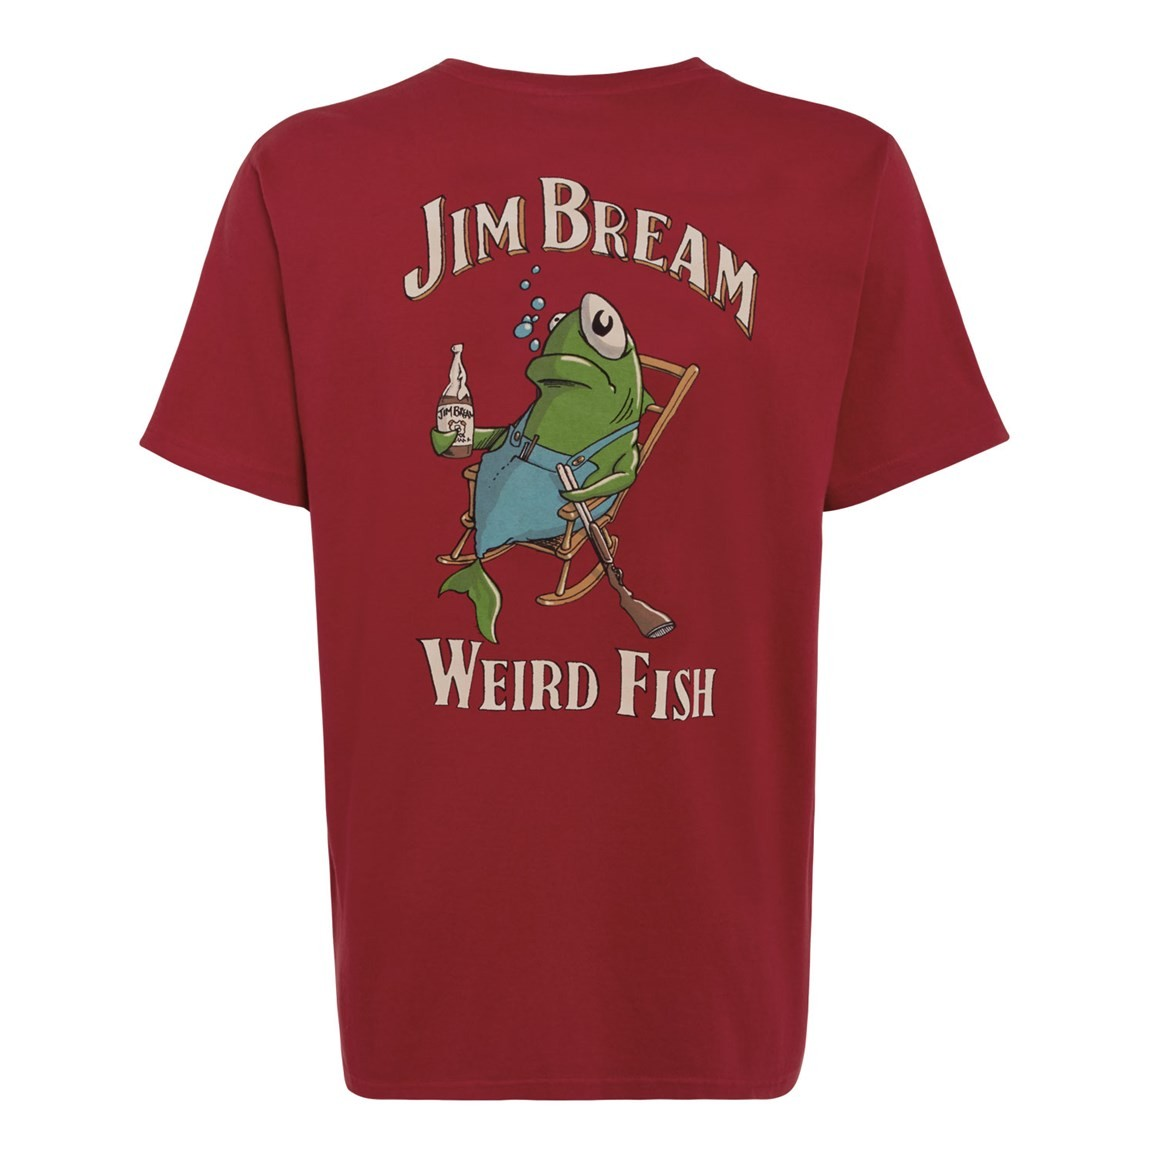 Jim Bream Printed Artist T-Shirt Jester Red